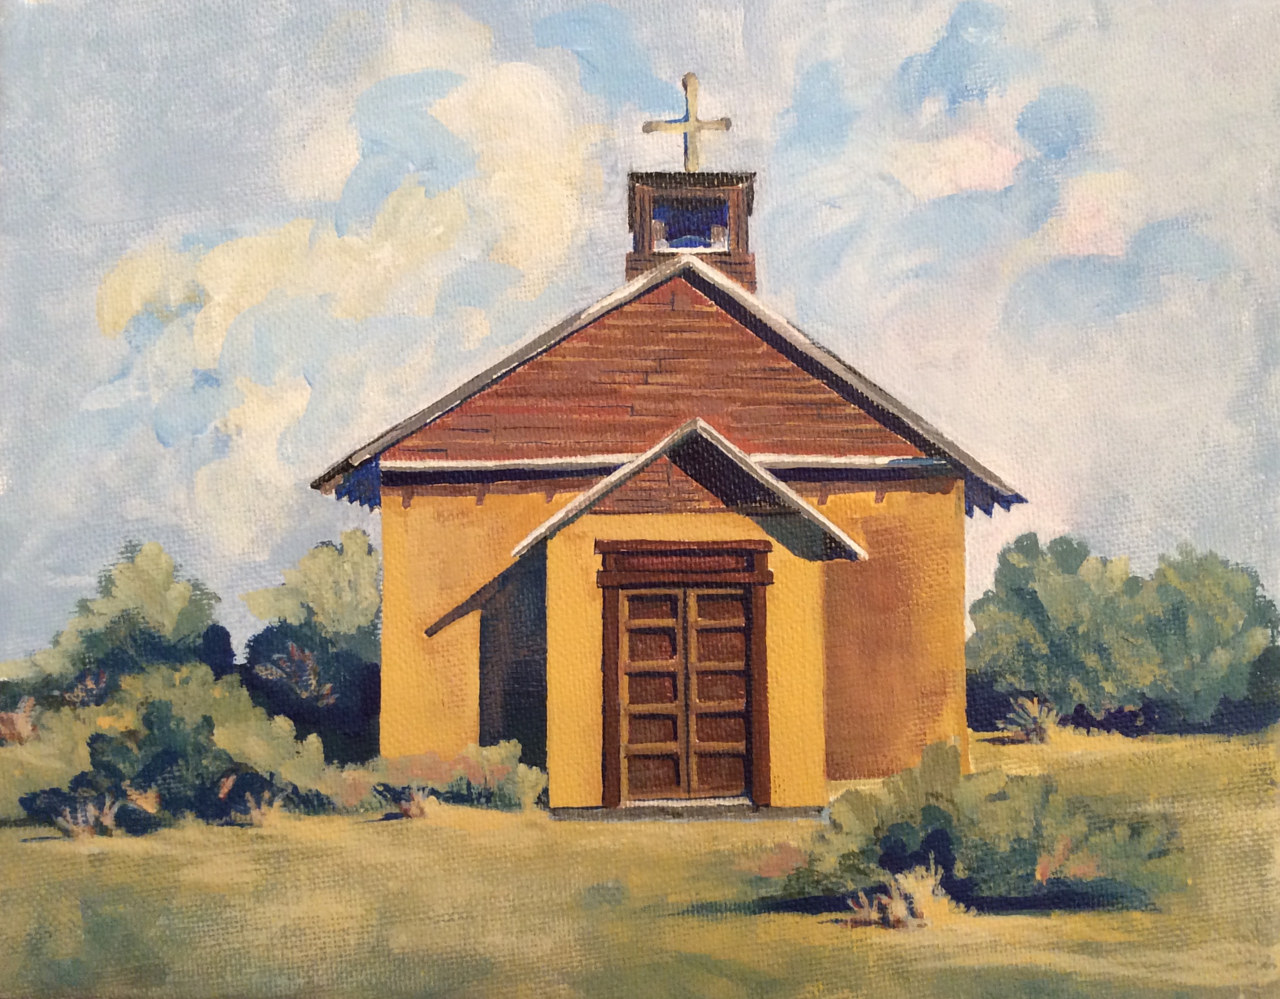 Acrylic painting Old Church, 2014 by Melissa Kenyon Mcintyre